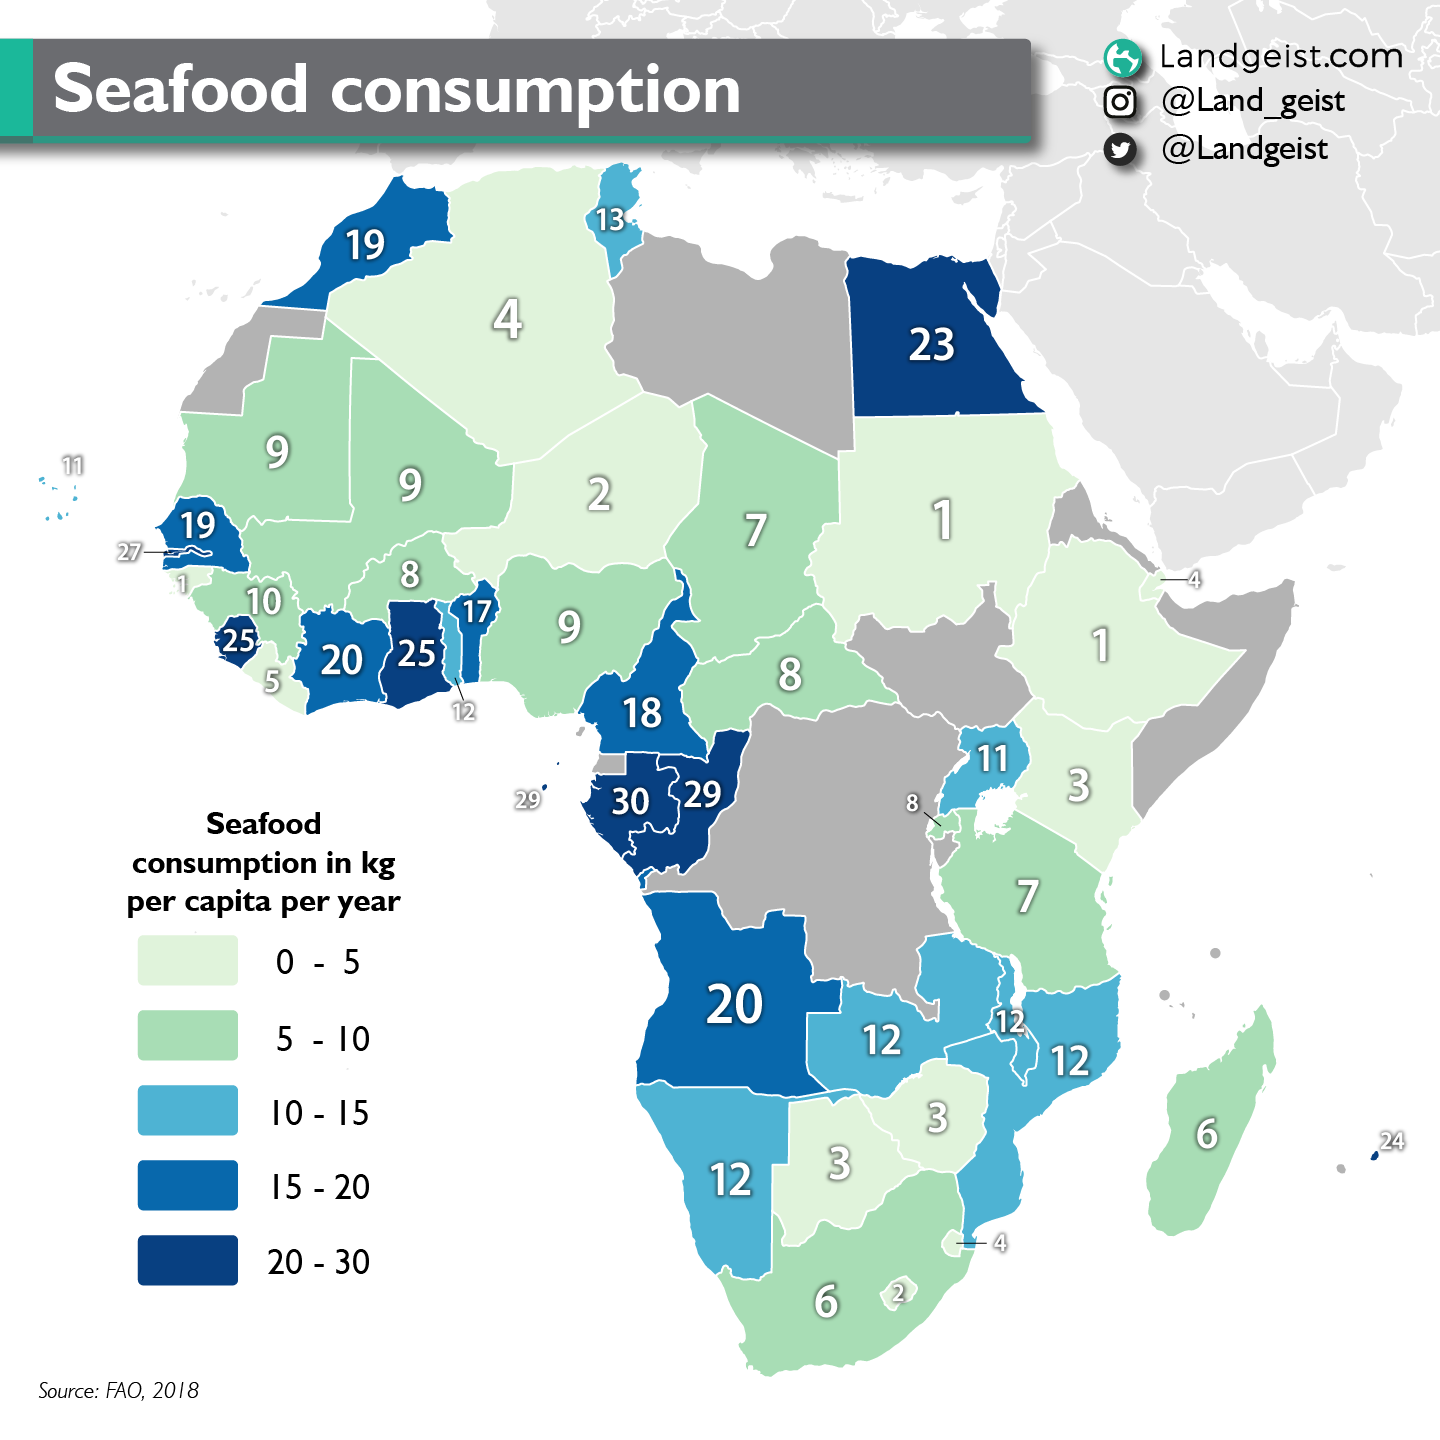 Map showing the seafood consumption in Africa.